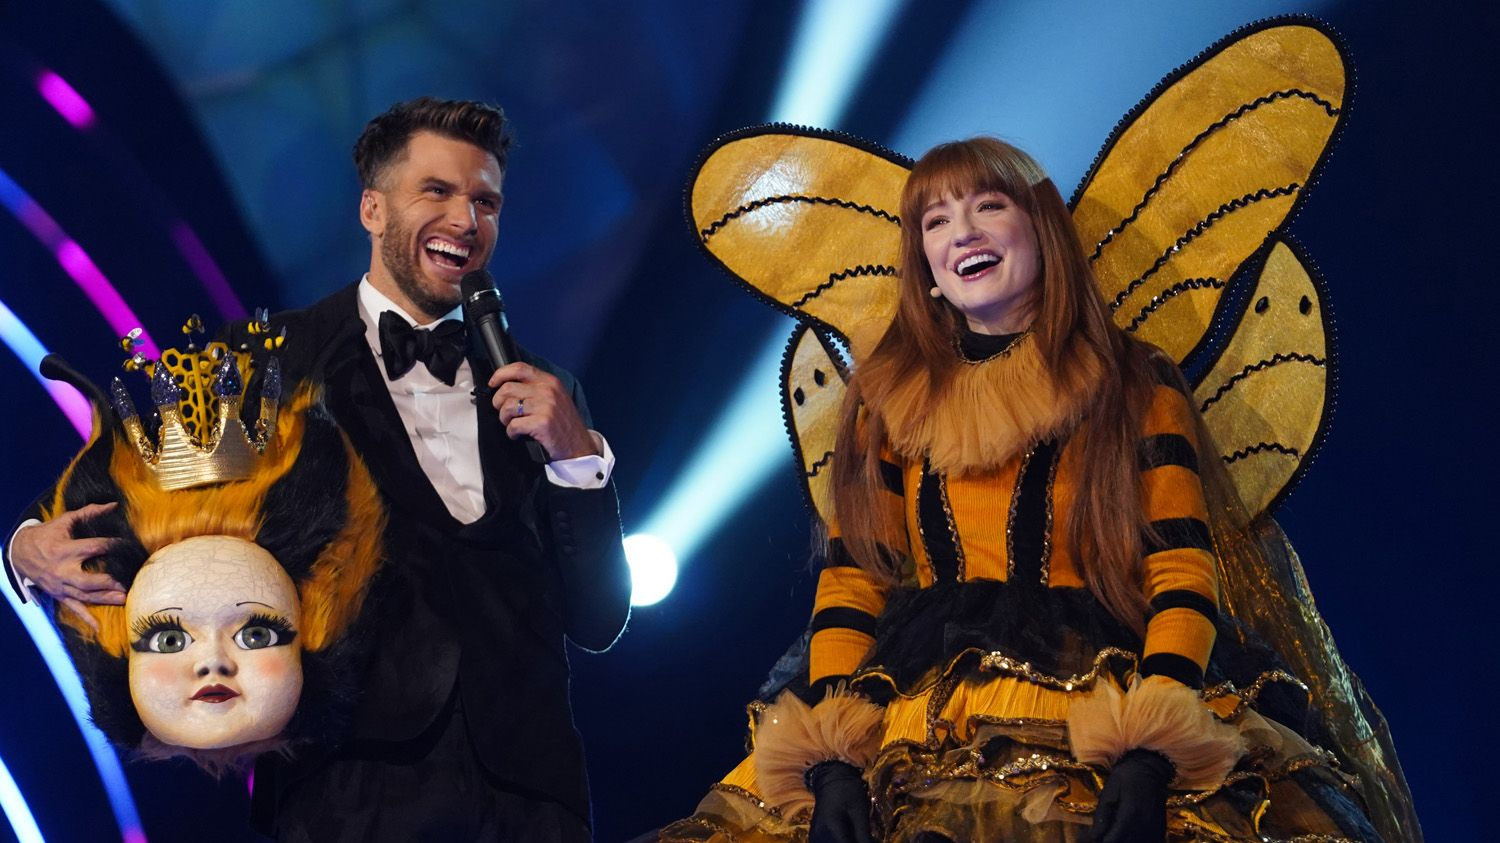 Joel Dommett hints at SECOND series of The Masked Singer